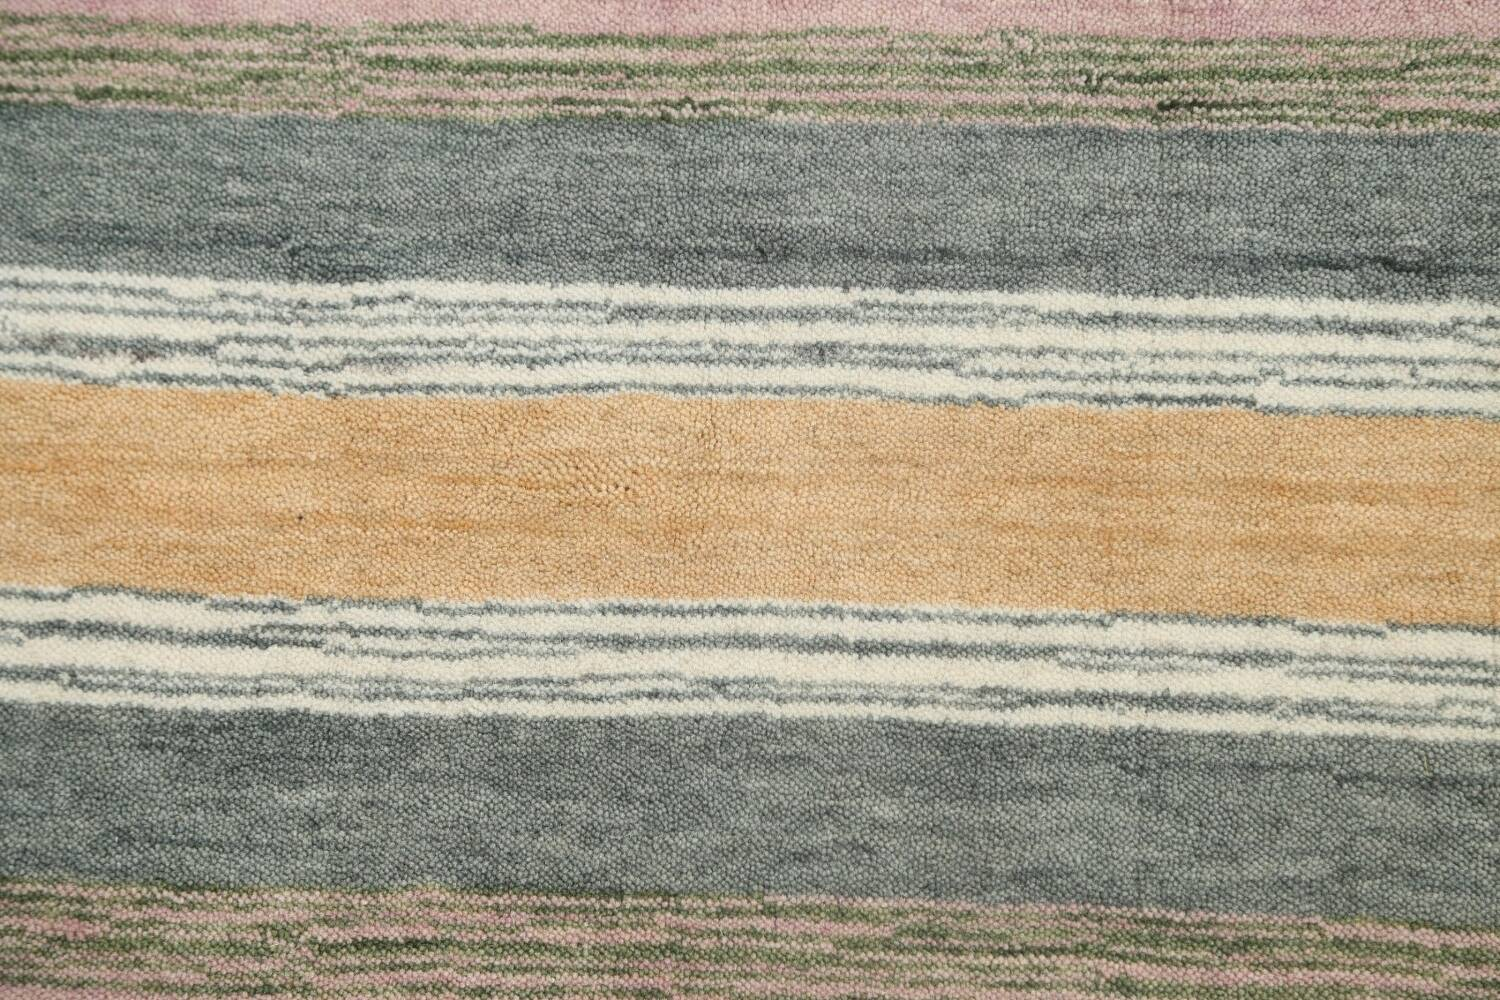 Abstract Gabbeh Oriental Area Rug 6x8 image 7